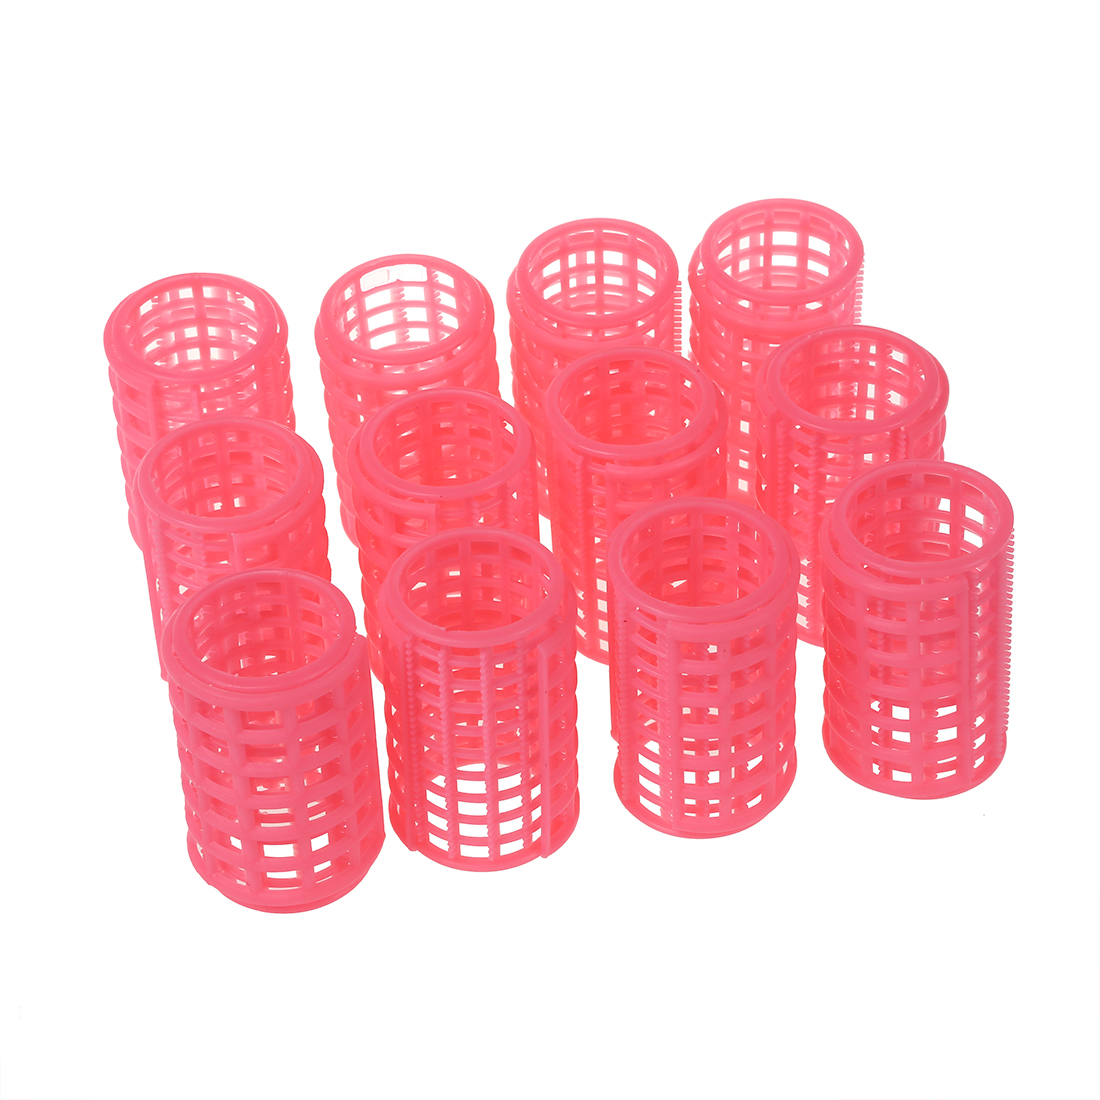 SODIAL 12 Pcs Pink Plastic Makeup DIY Hair Styling Roller Curlers Clips